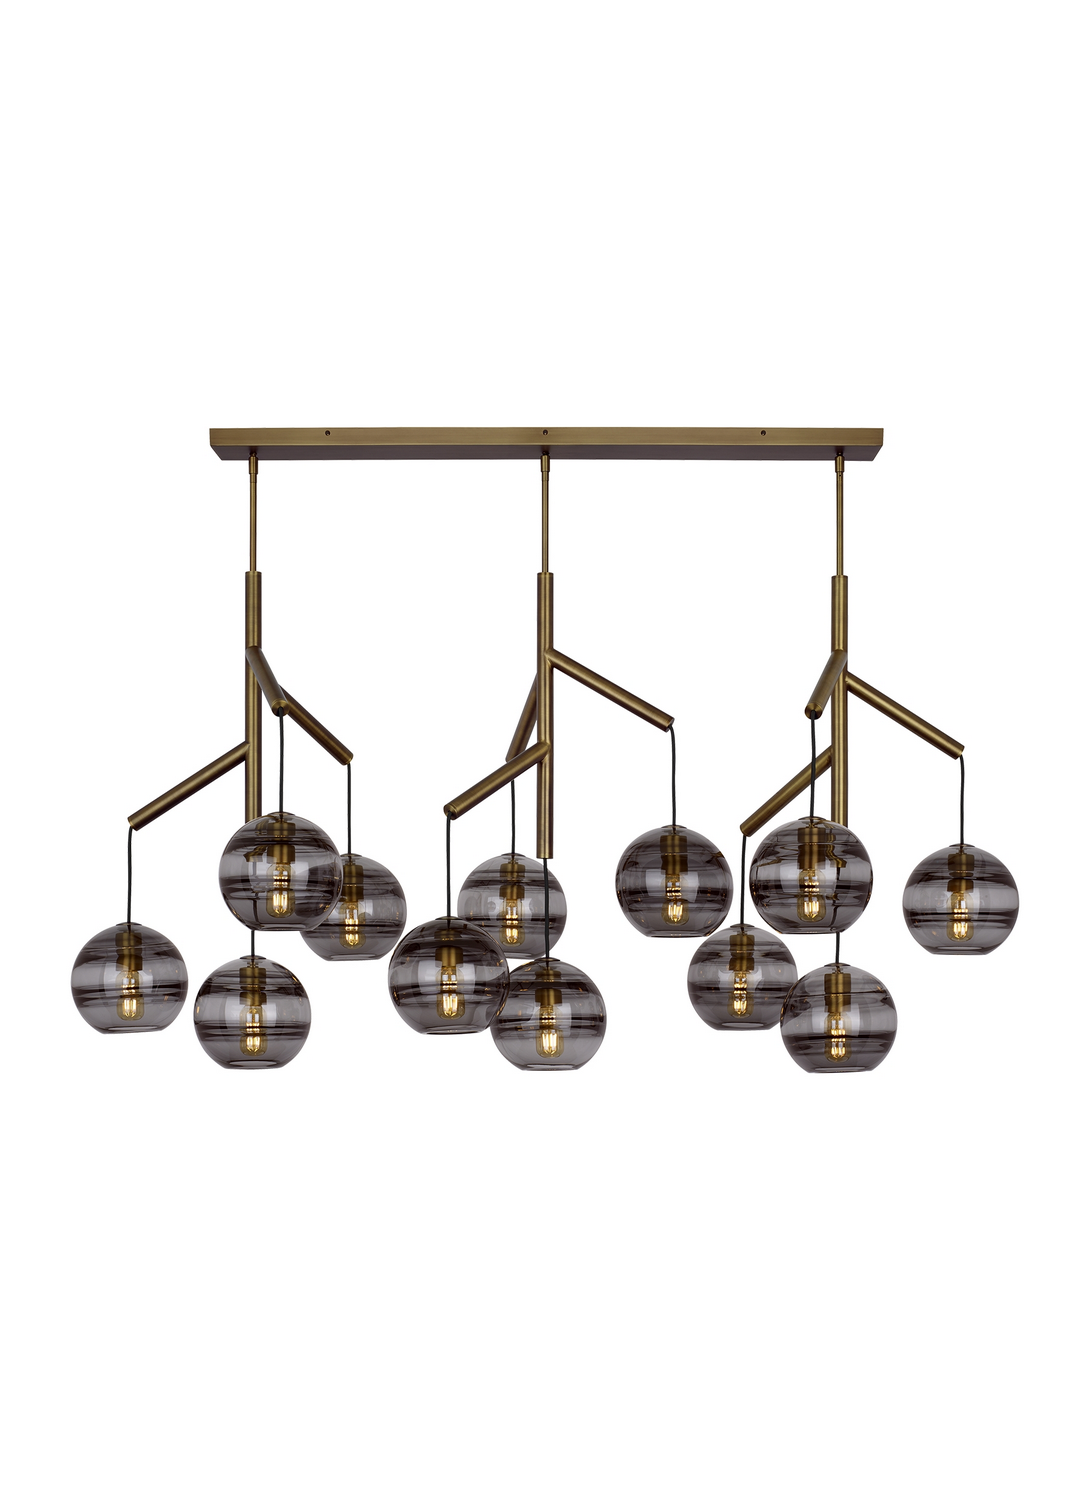 Chandelier from the Sedona collection by Tech Lighting 700SDNMPL3KR